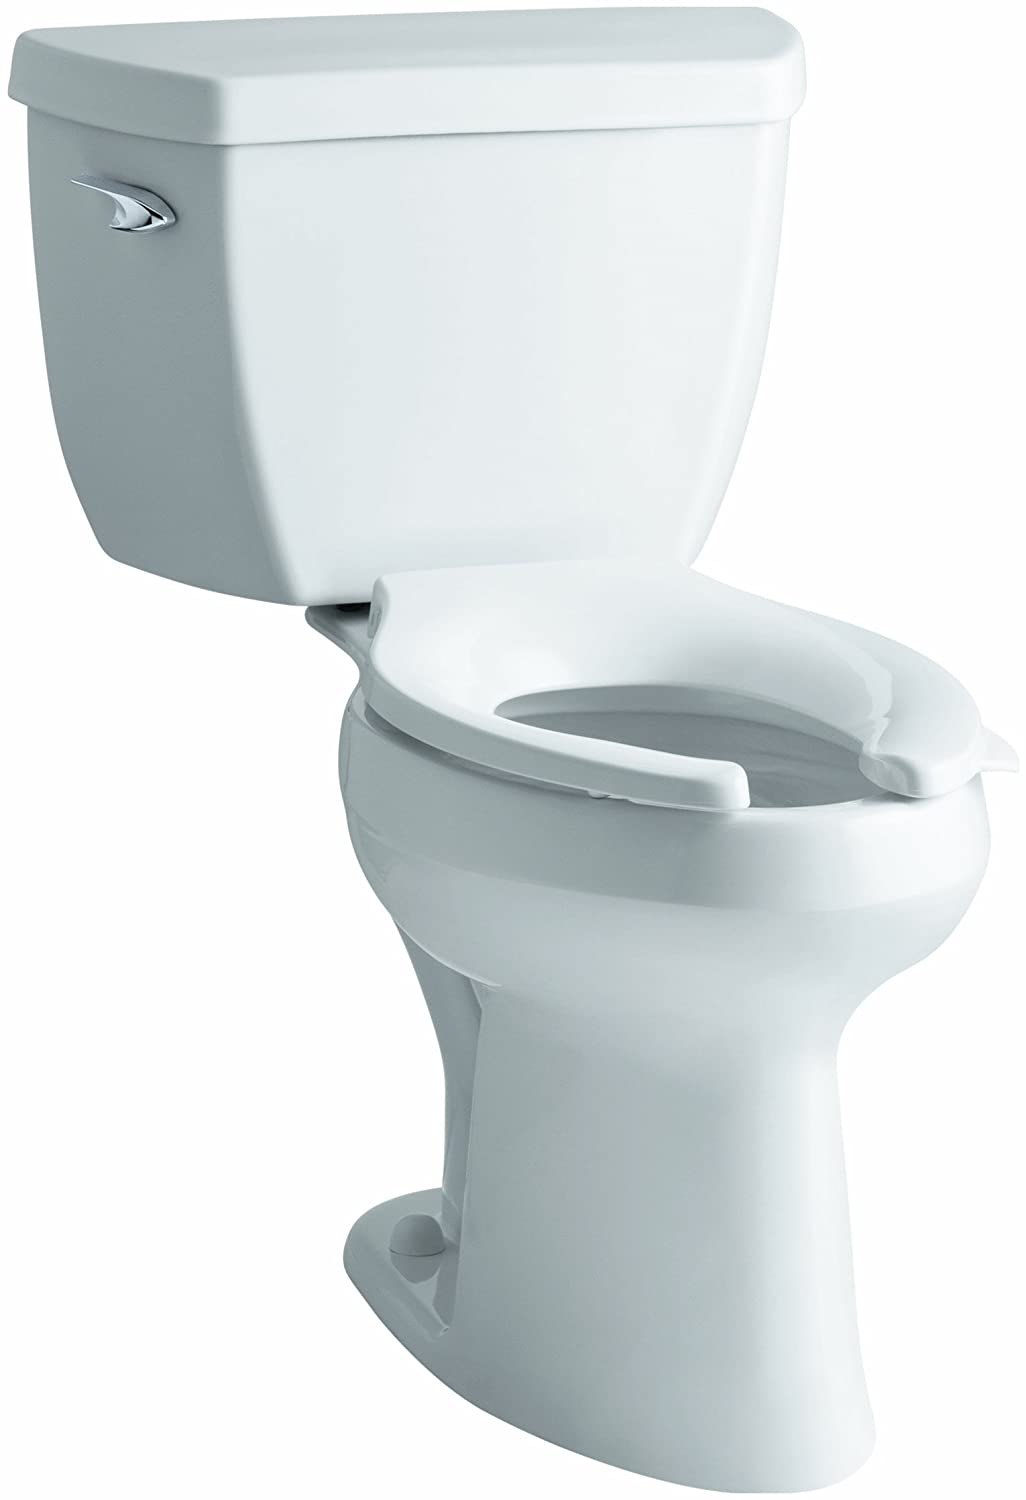 Kohler K-3519-0 Highline Classic Comfort Height Elongated 1.0 gpf ...